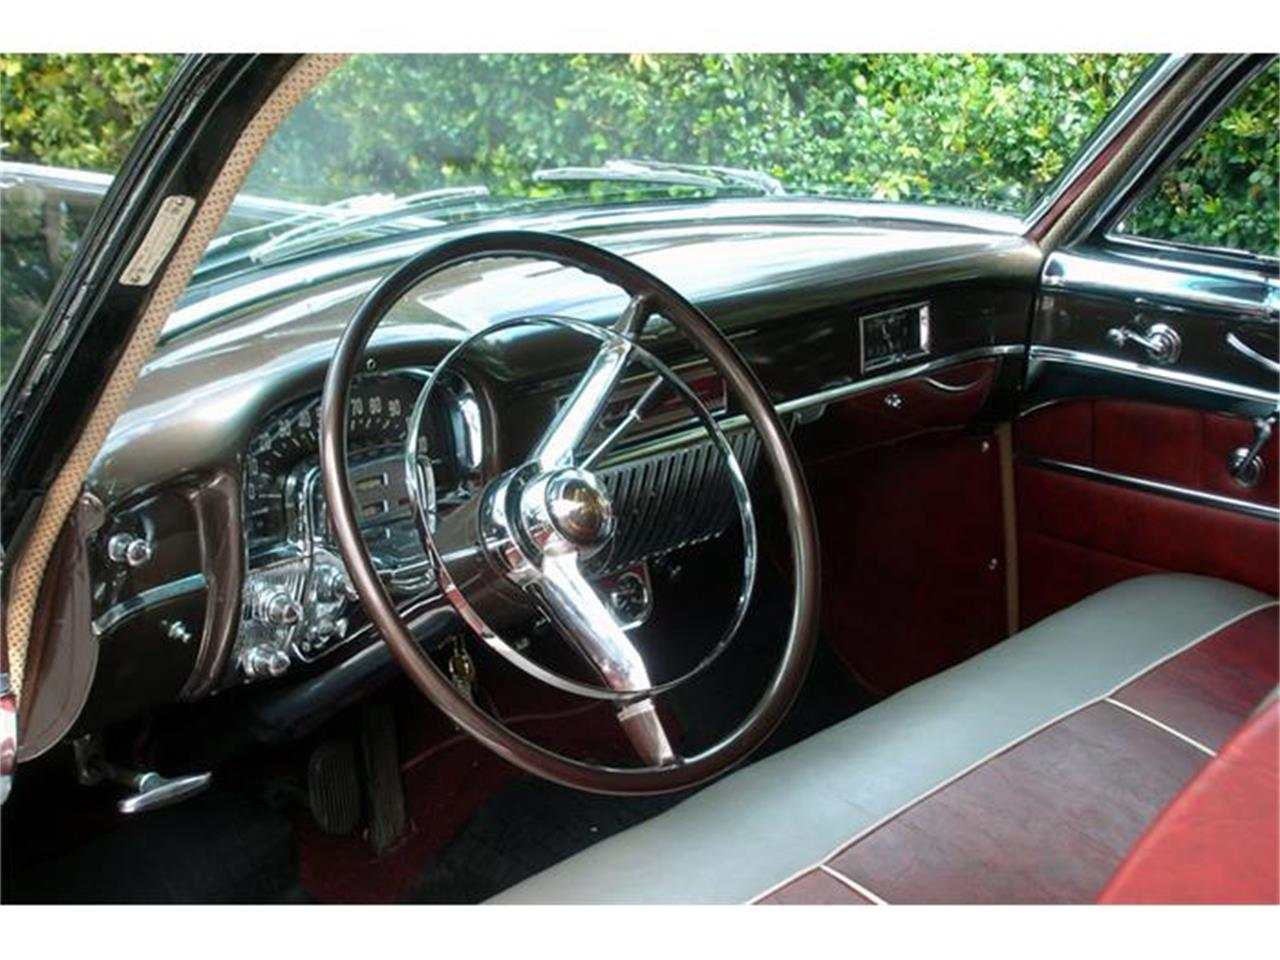 Large Picture of '52 S&S Florentine located in Mount Dora (Orlando) Florida - $96,000.00 Offered by Classic Dreamcars, Inc. - FL81